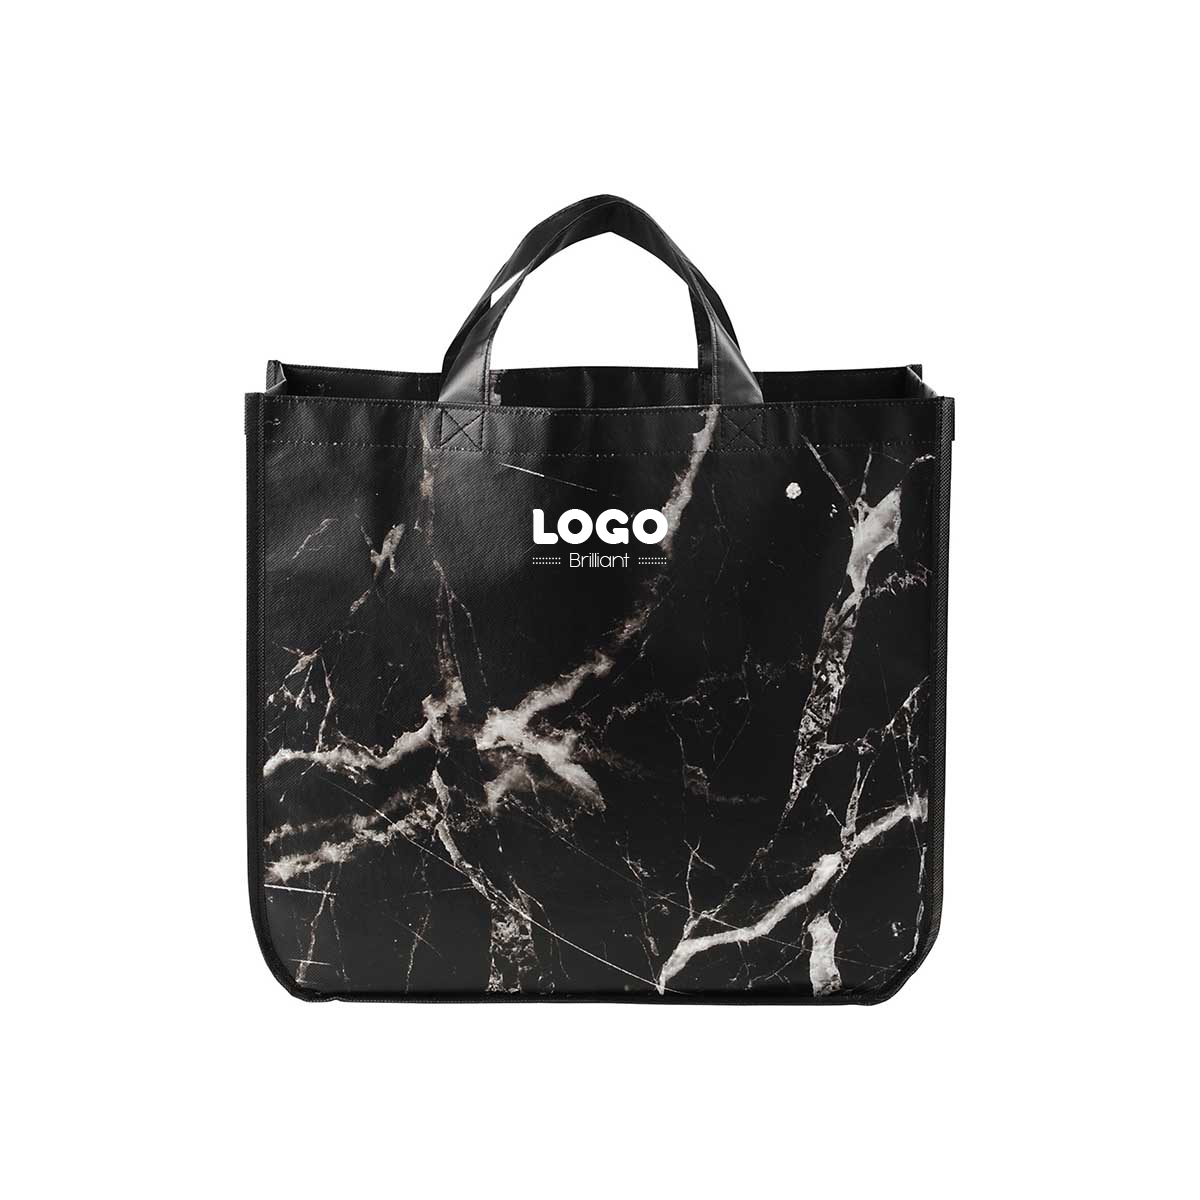 134779 marbled tote one color only one location imprint